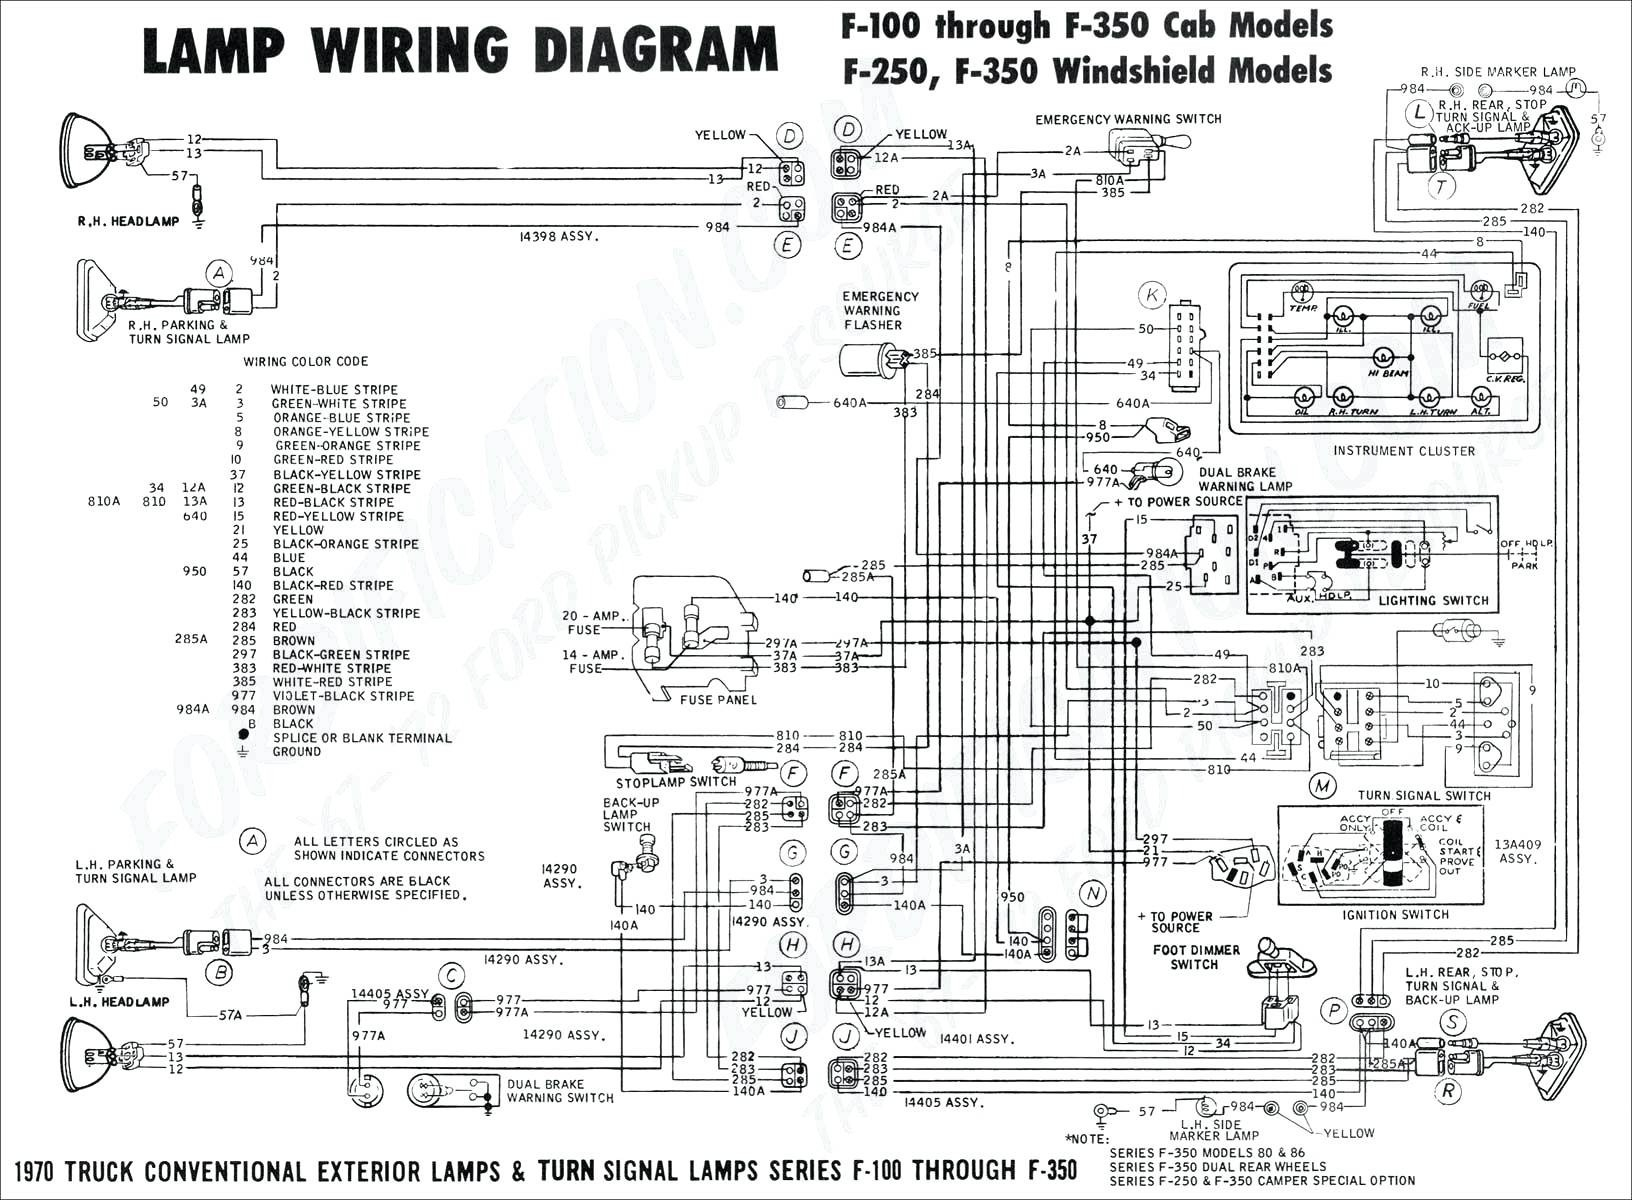 f150 trailer wiring diagram Download-Semi Trailer Wiring Diagram Unique Wiring Diagram ford F150 Trailer Lights Truck Best ford Engine 13-f